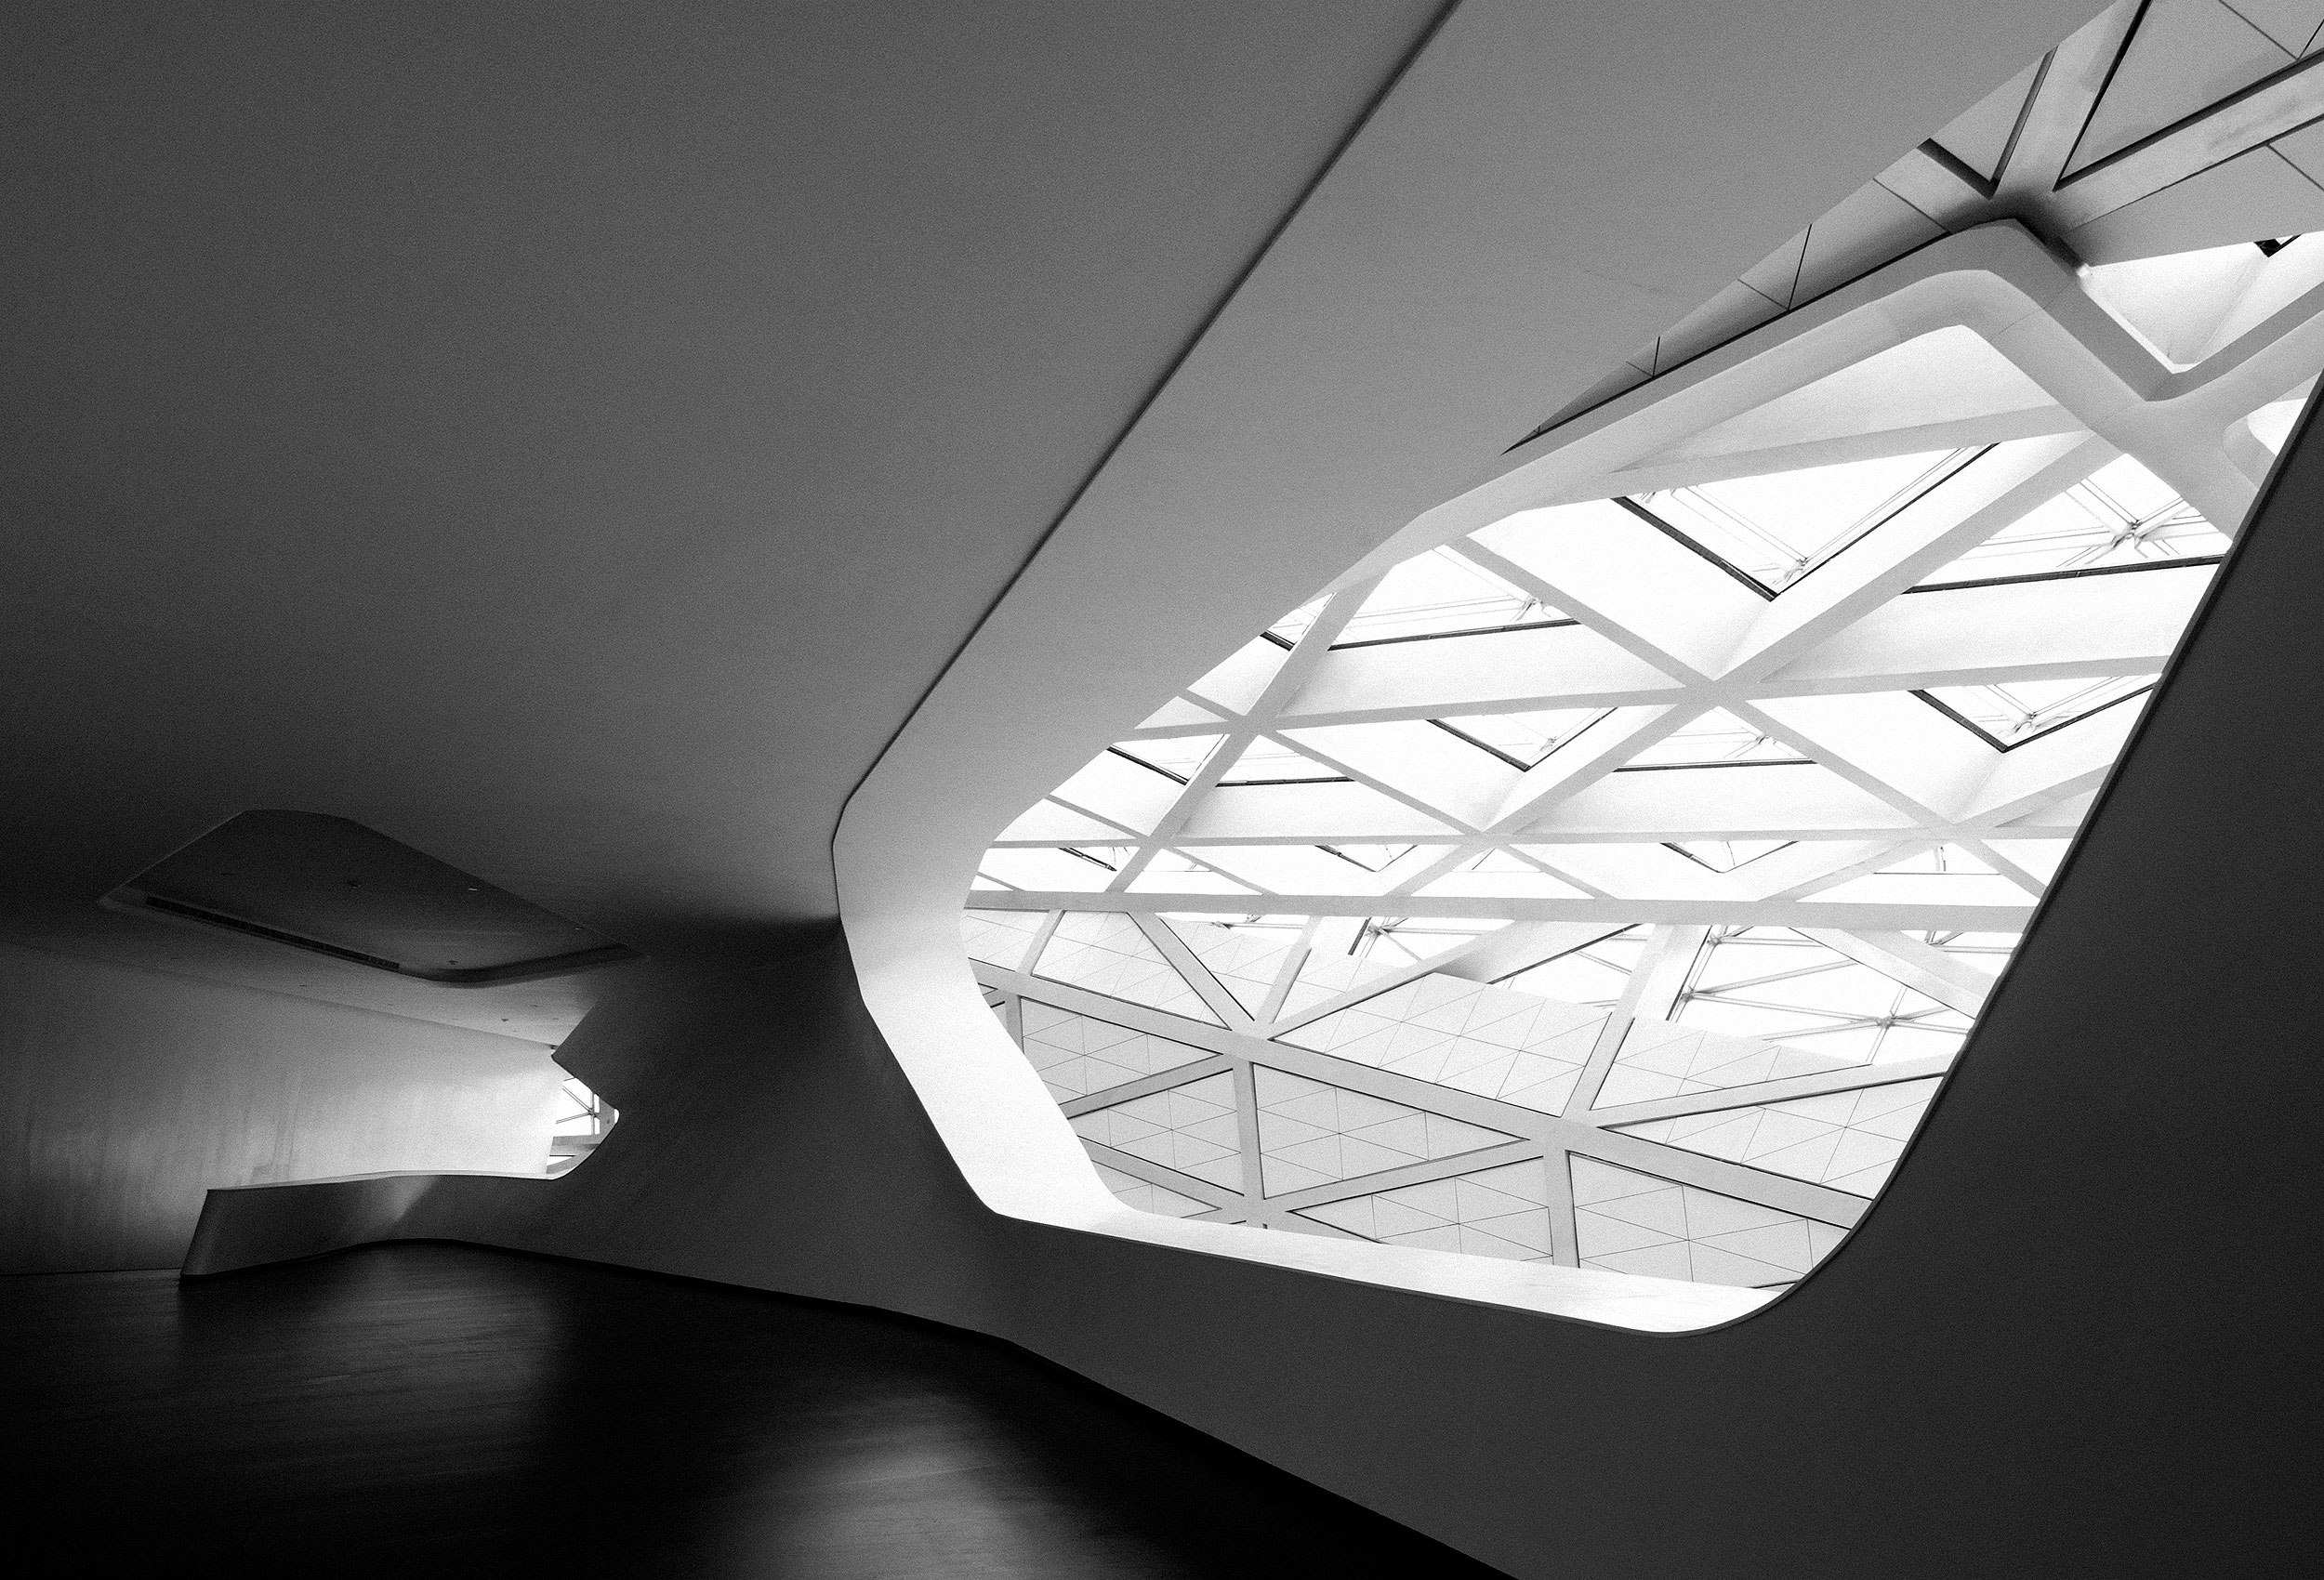 Guangzhou Opera House by architectural photographer Kristopher Grunert